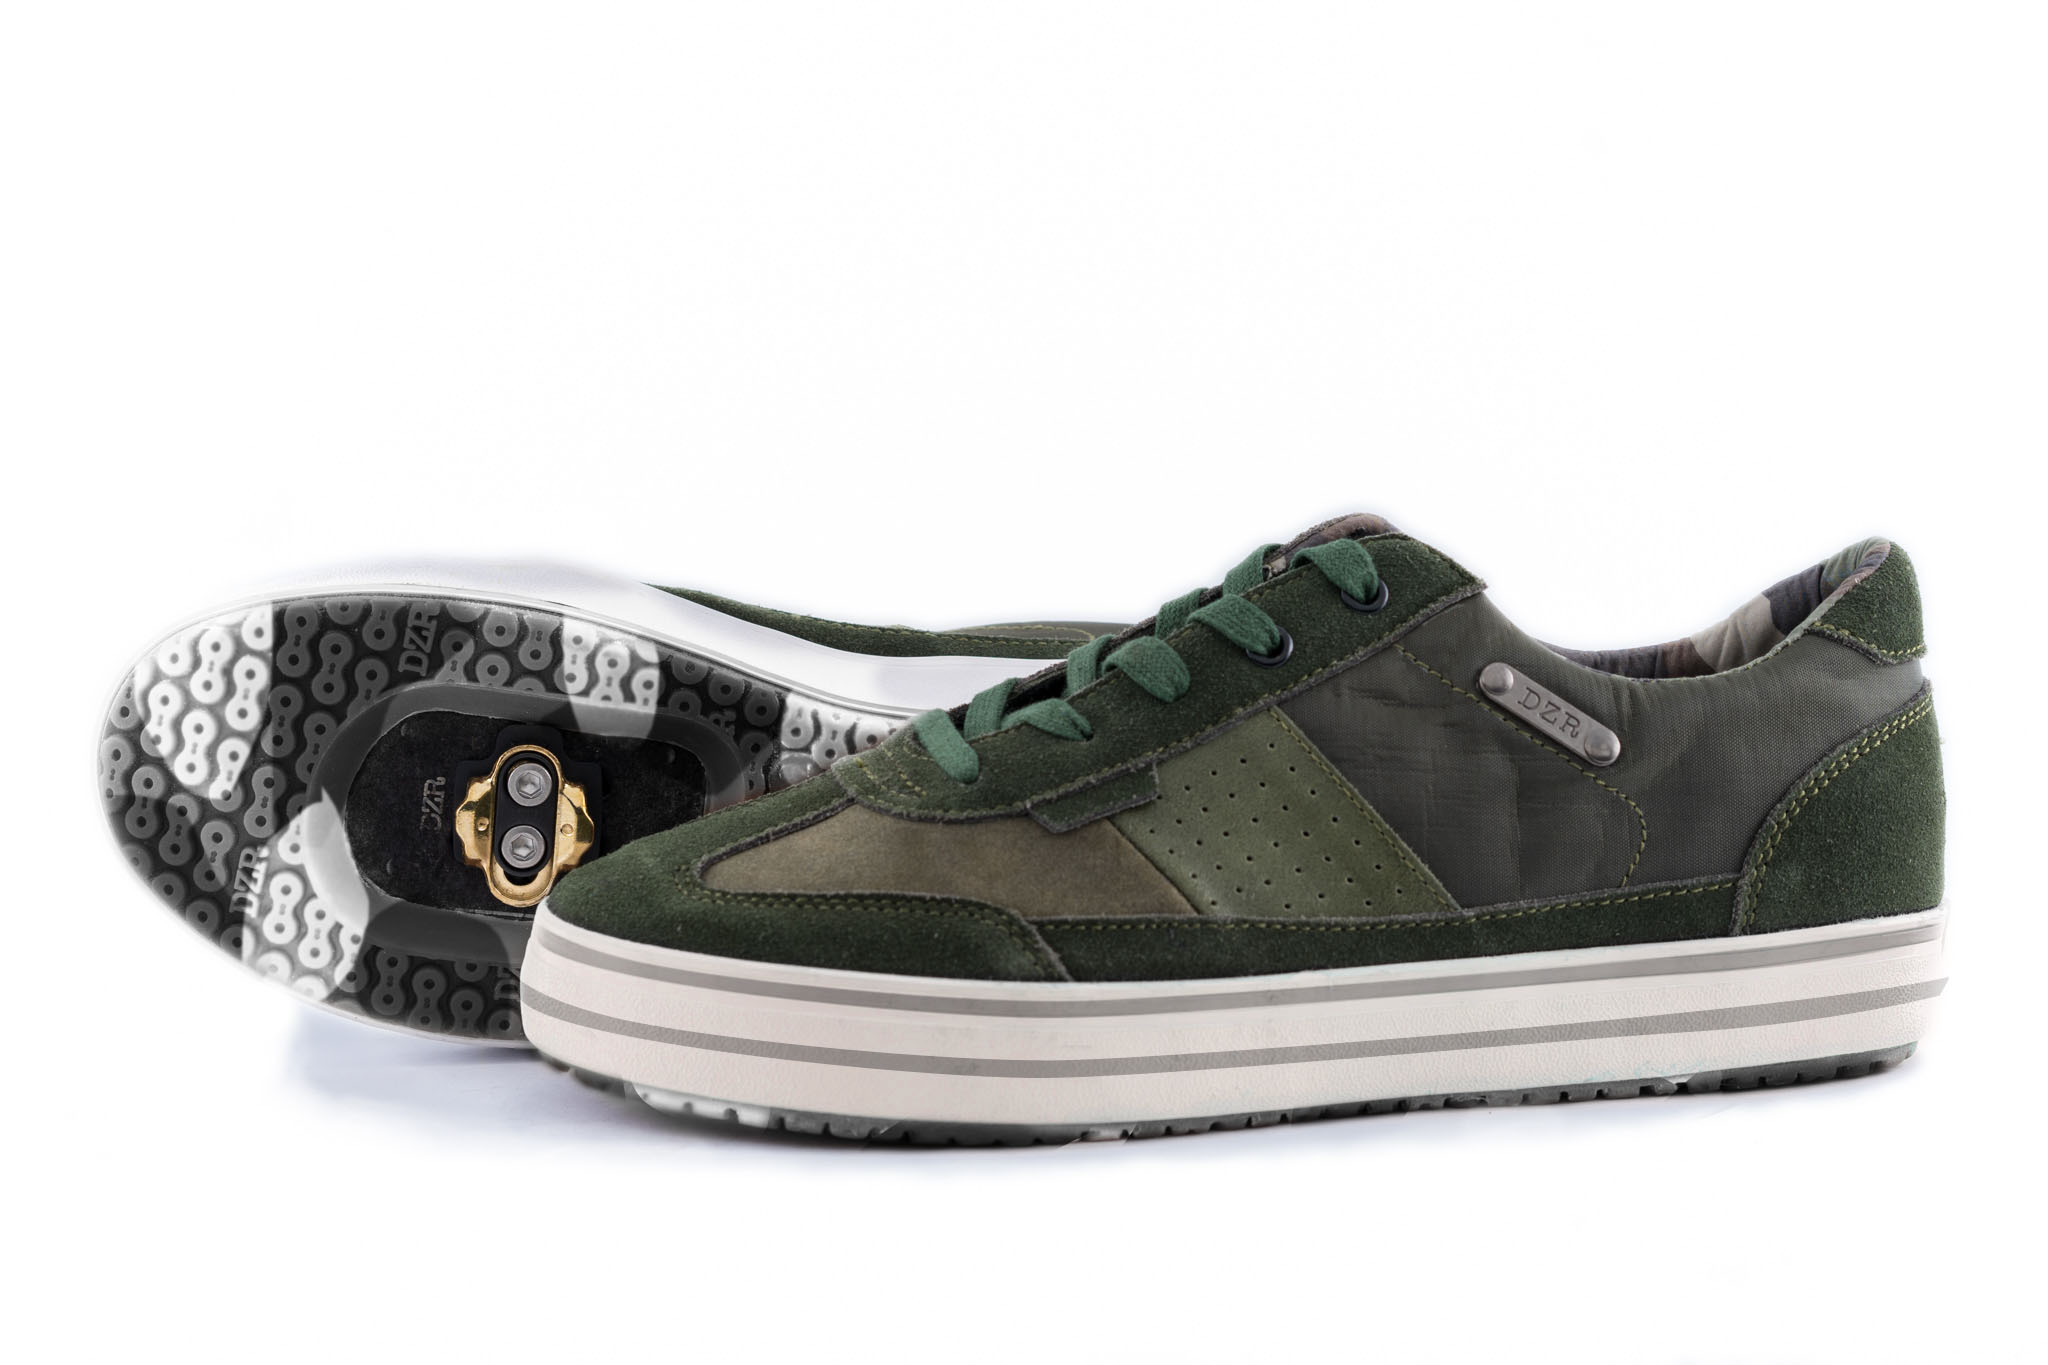 reputable site f7fc7 41f2d DZR Shoes releases two limited edition shoes